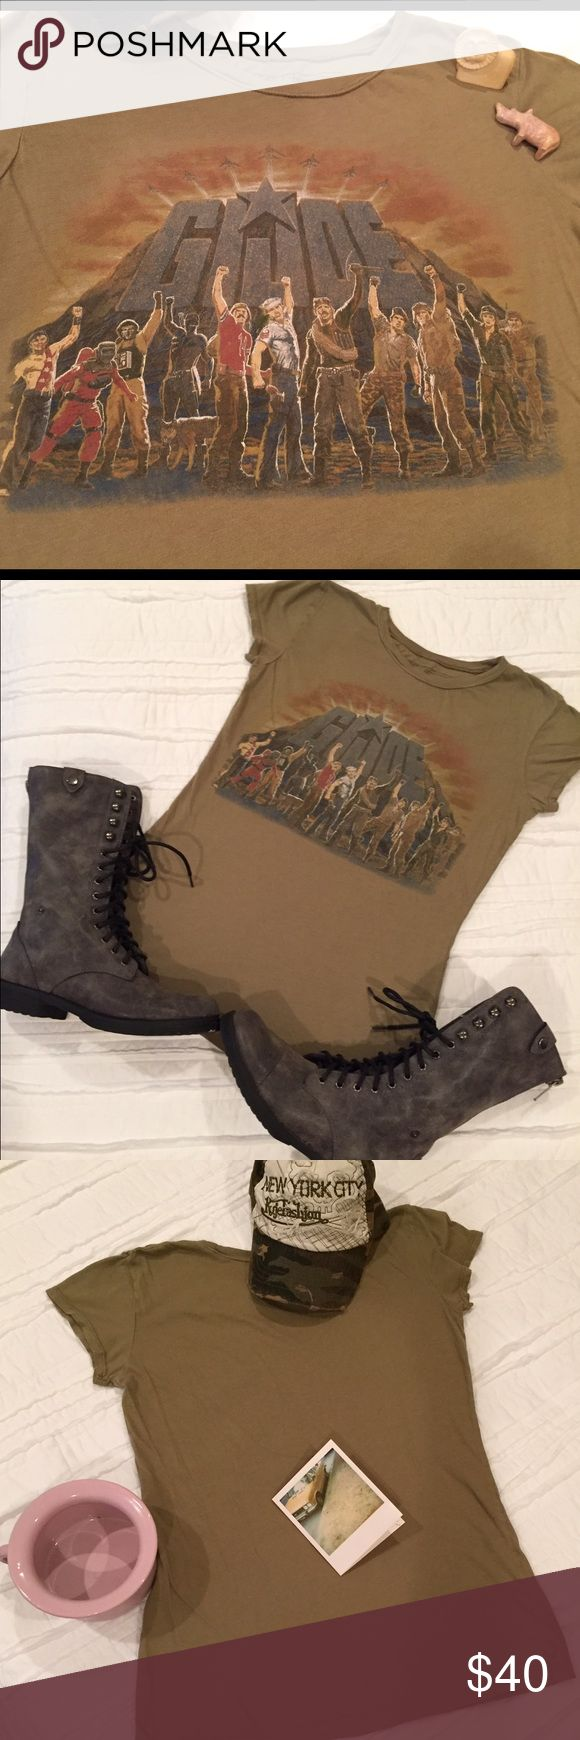 Go go ...GI JOE! T-shirt GI Joe CHEER Vintage style tee, Hasbro Trademark. They fought for freedom wherever there was trouble!  Great condition, no tears, spots, or unraveling.  Get those boots & utility jackets out...this would be perfect!  Boots for sale too! Shirts Tees - Short Sleeve